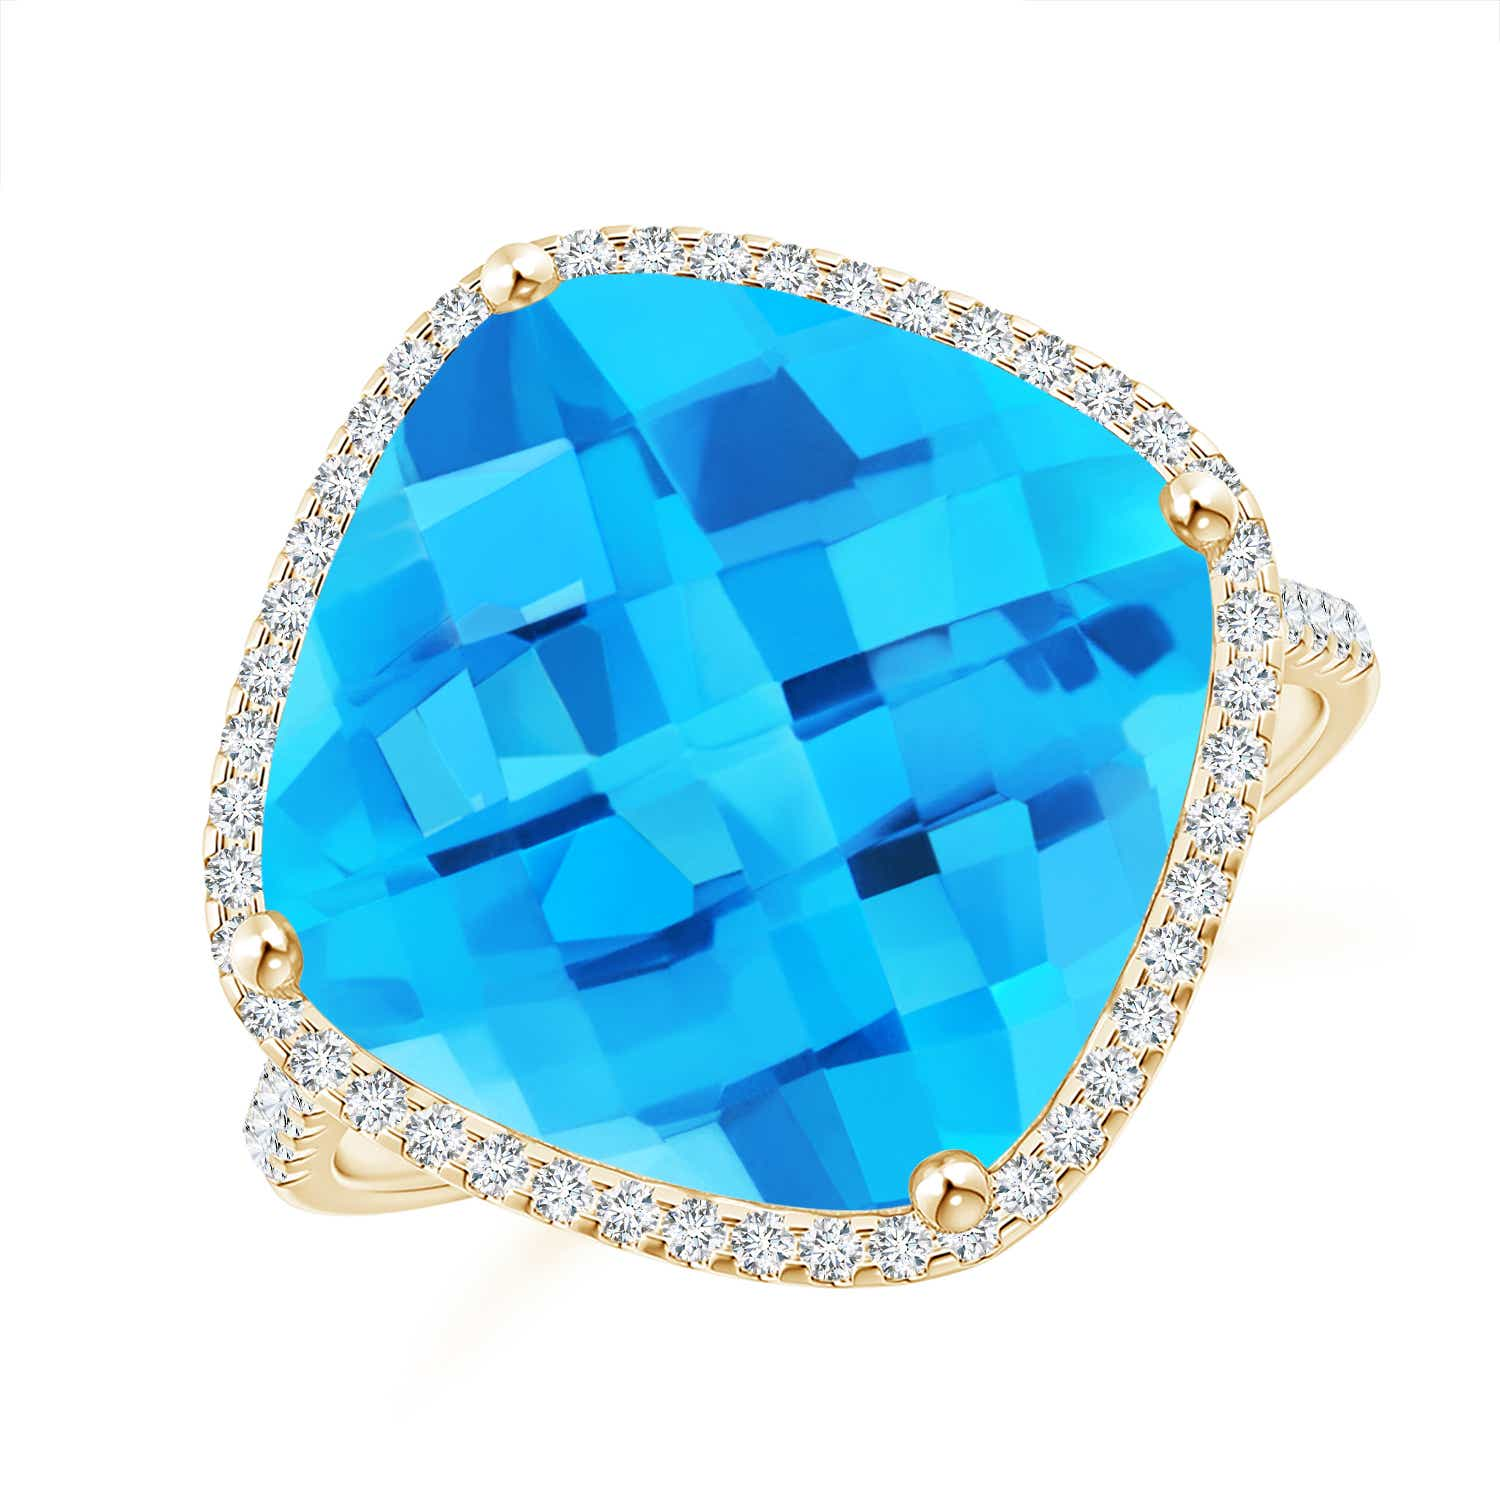 Angara Cushion Swiss Blue Topaz Halo Ring with Clover Motif E6lZdf5Uxh